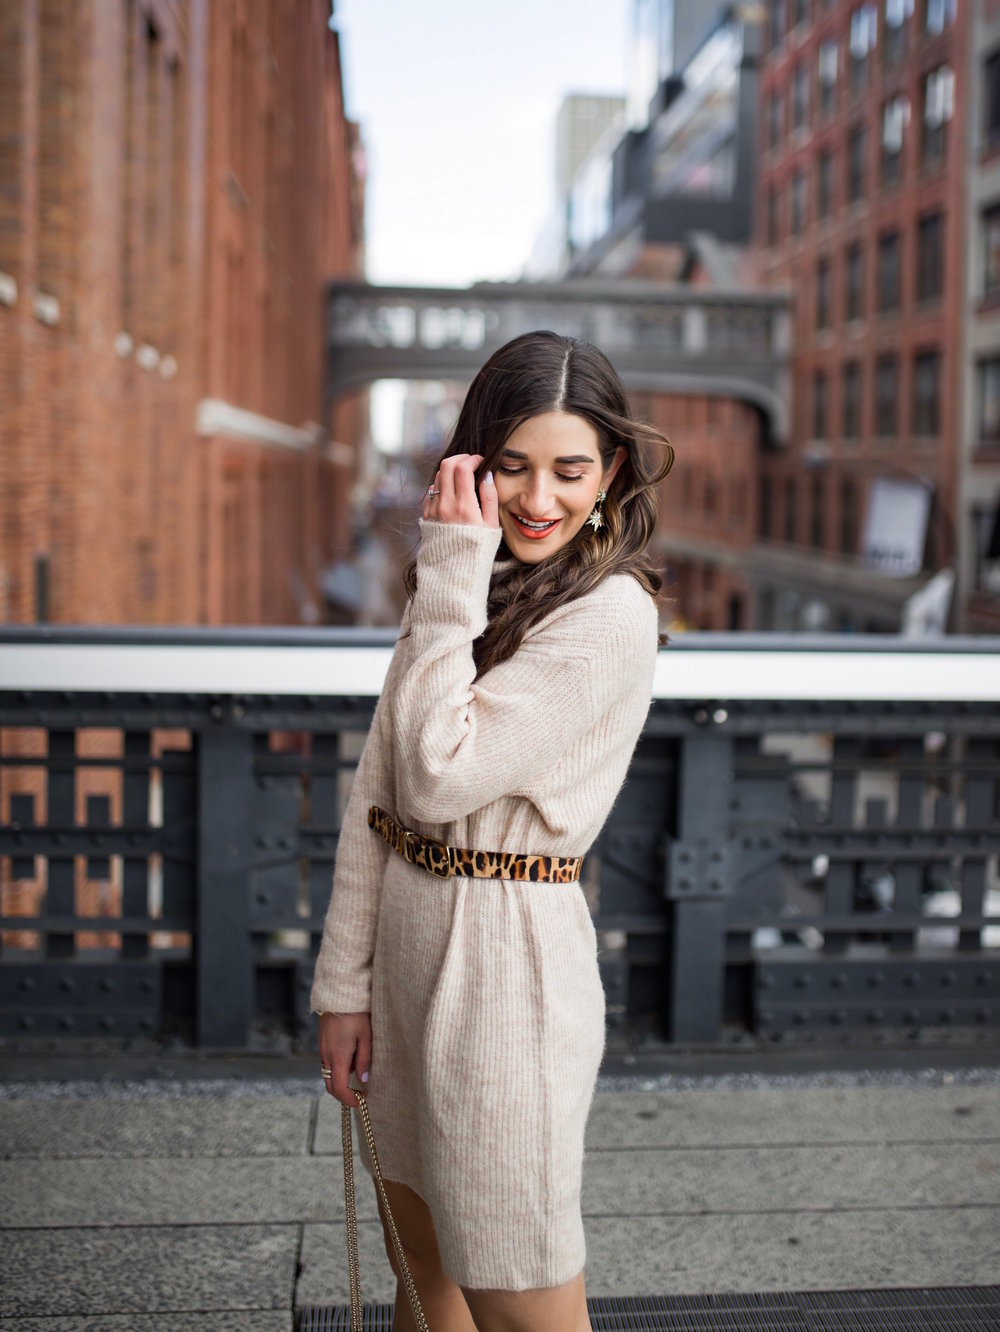 Why Blogging Is Far From Freeloading Beige Sweater Dress White Booties Esther Santer Fashion Blog NYC Street Style Blogger Outfit OOTD Trendy Shopping Leopard Belt Neutral Winter How To Wear Shop Sale Mango Jcrew The High Line  Photoshoot Inspiration.jpg